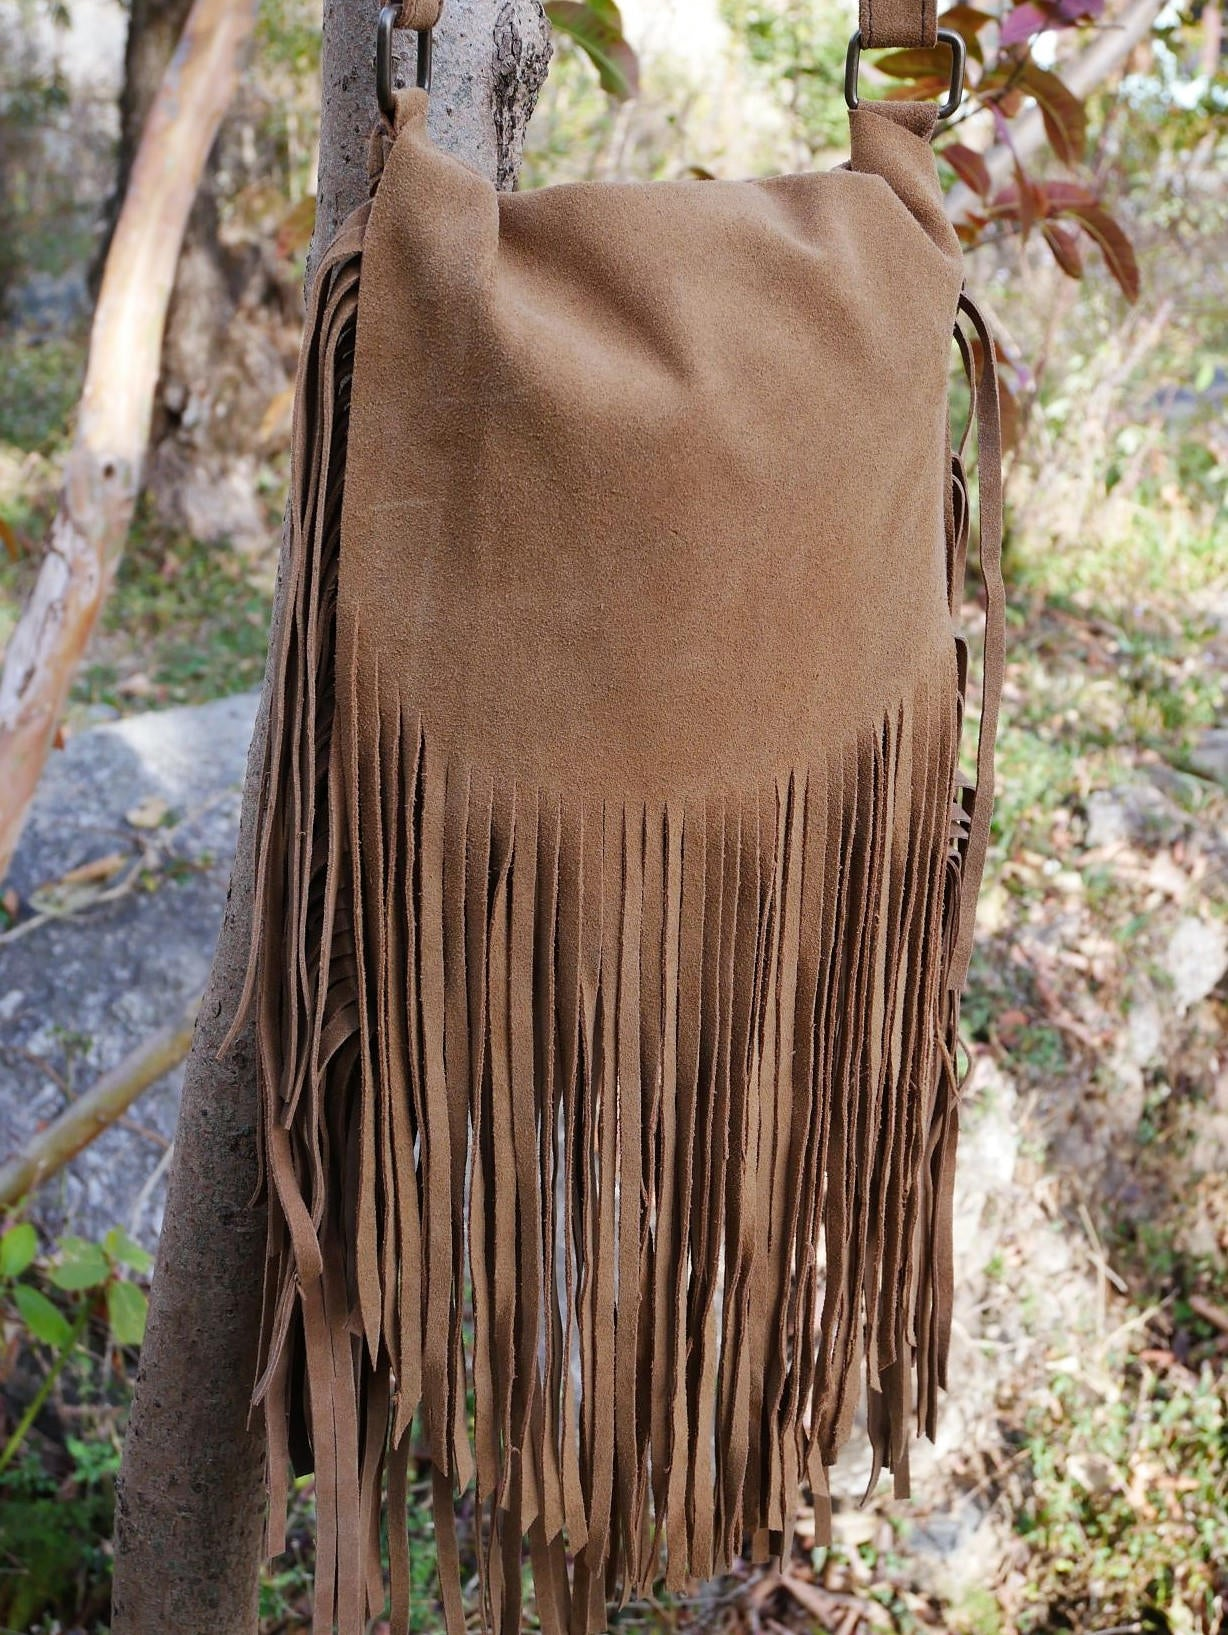 Boho fringe bag sued leather bag boho chic shoulder bag